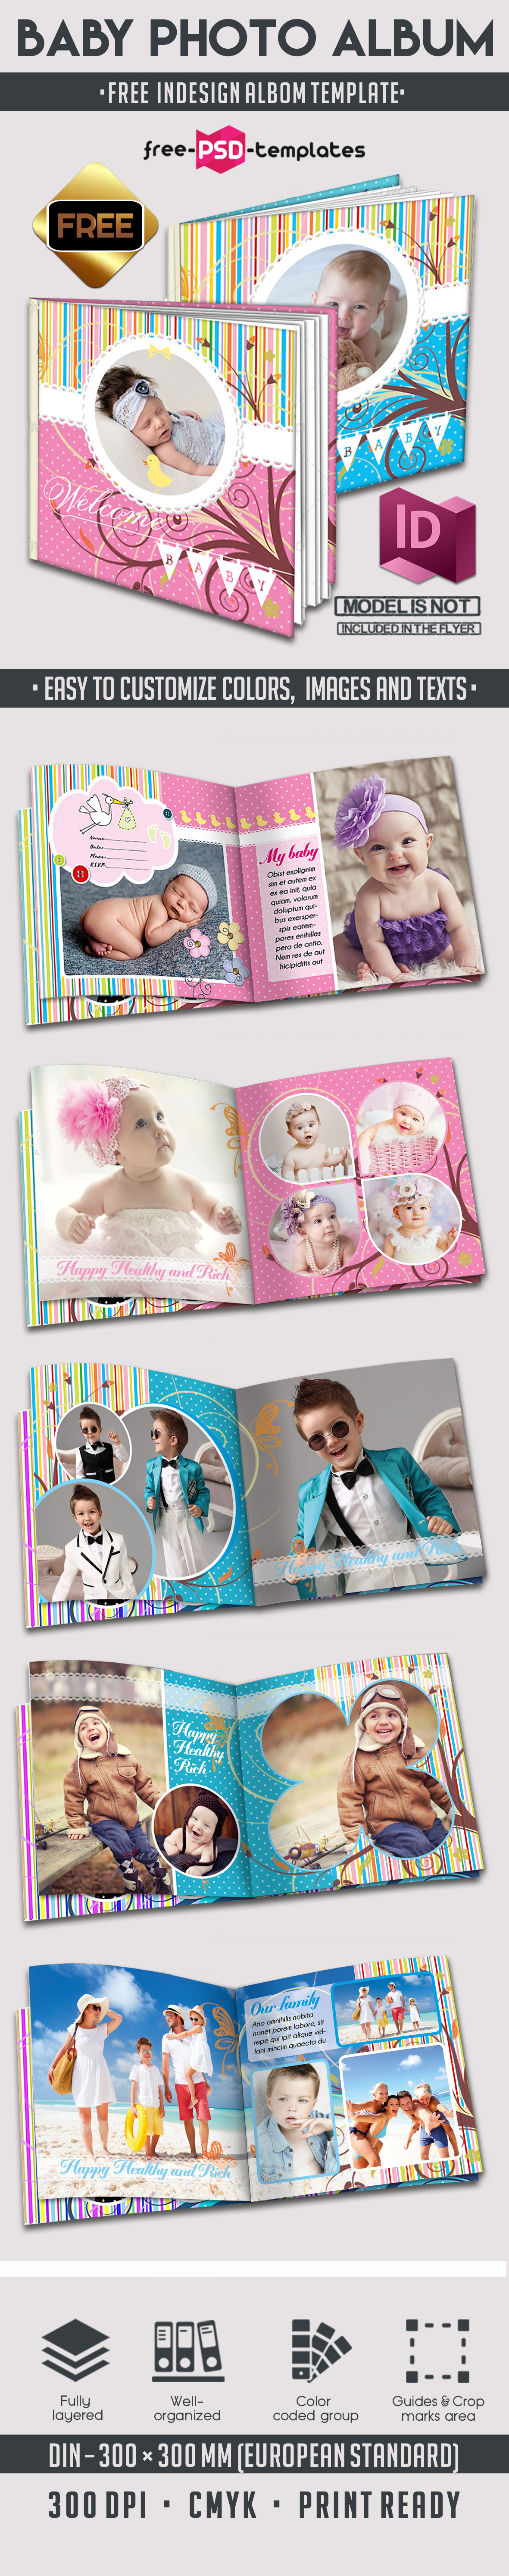 Bigpreview_free-baby-photo-album-12-pages